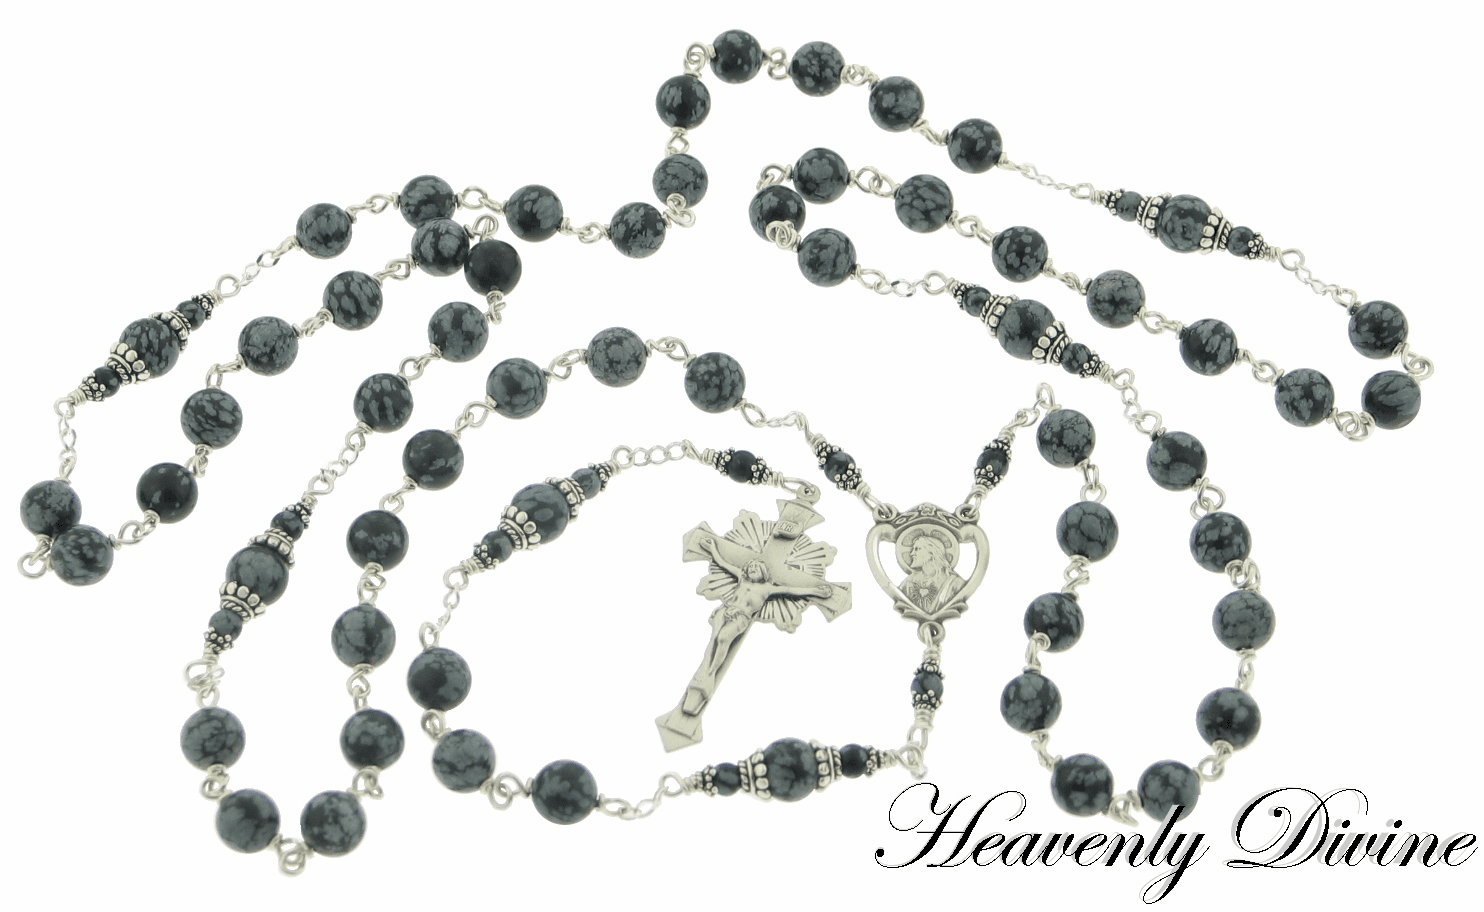 Handmade Snowflake Obsidian Sterling Silver Wire-Wrapped Rosary by Heavenly Divine